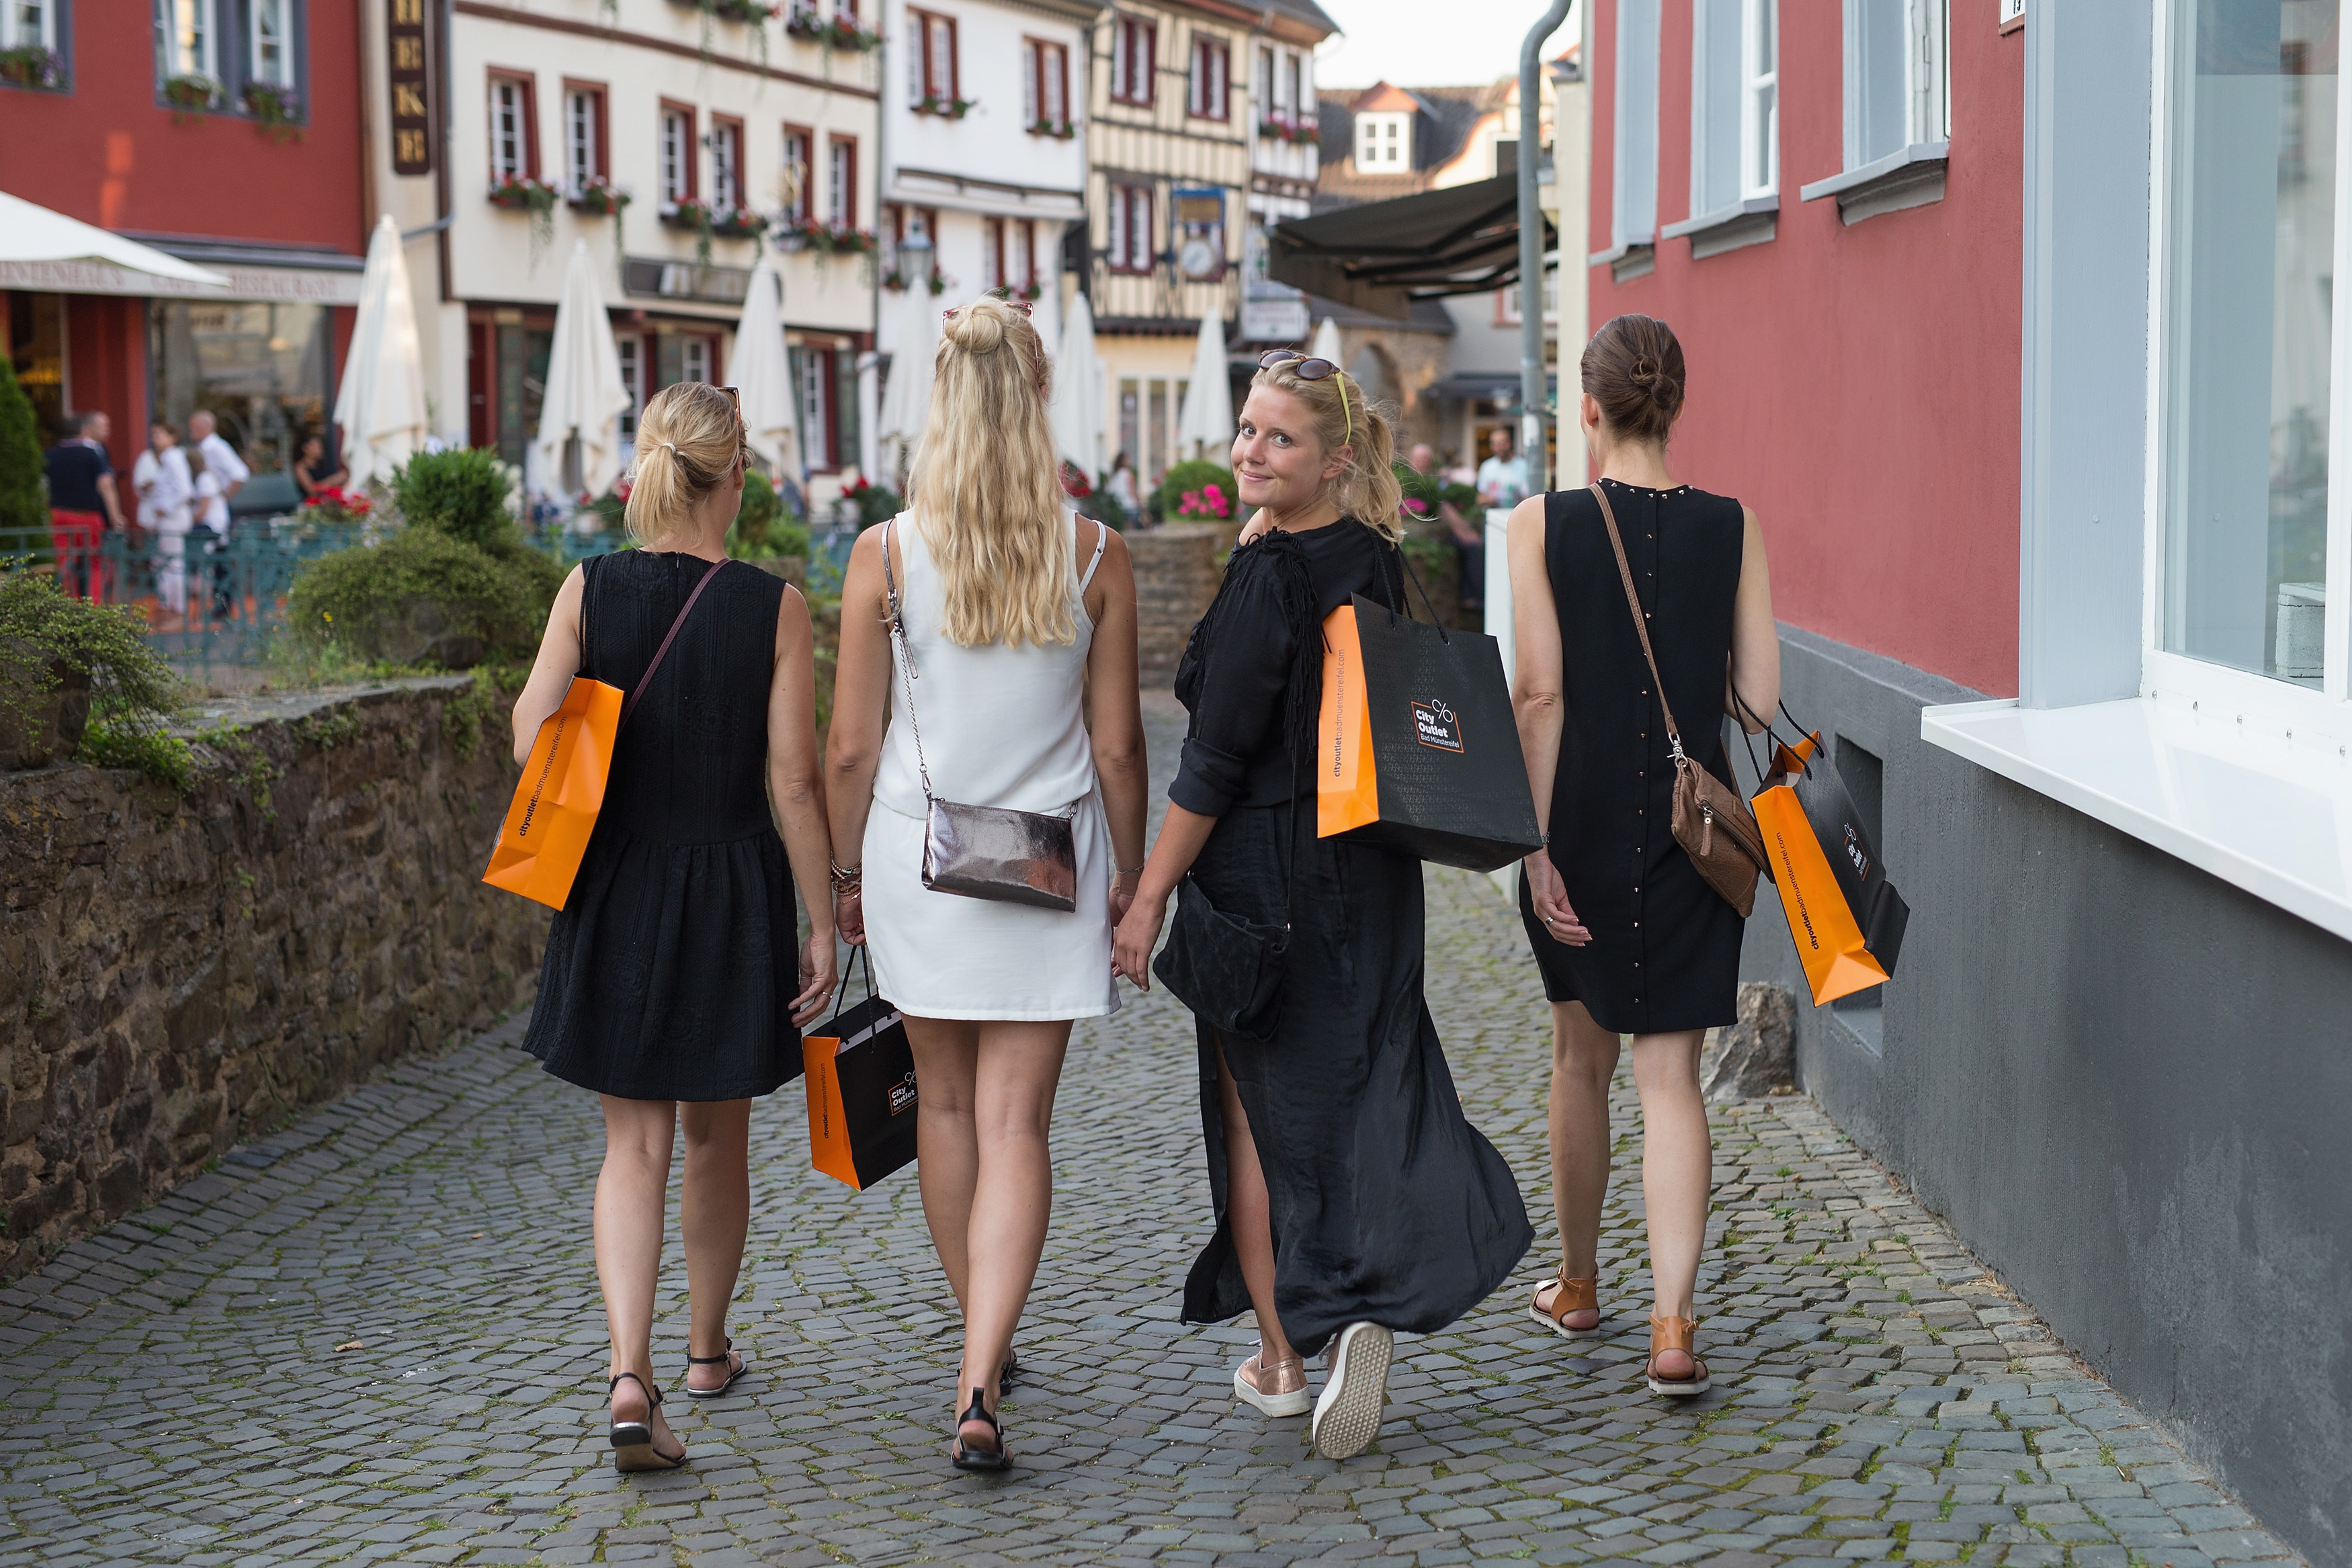 Women carrying shopping bags in Germany.